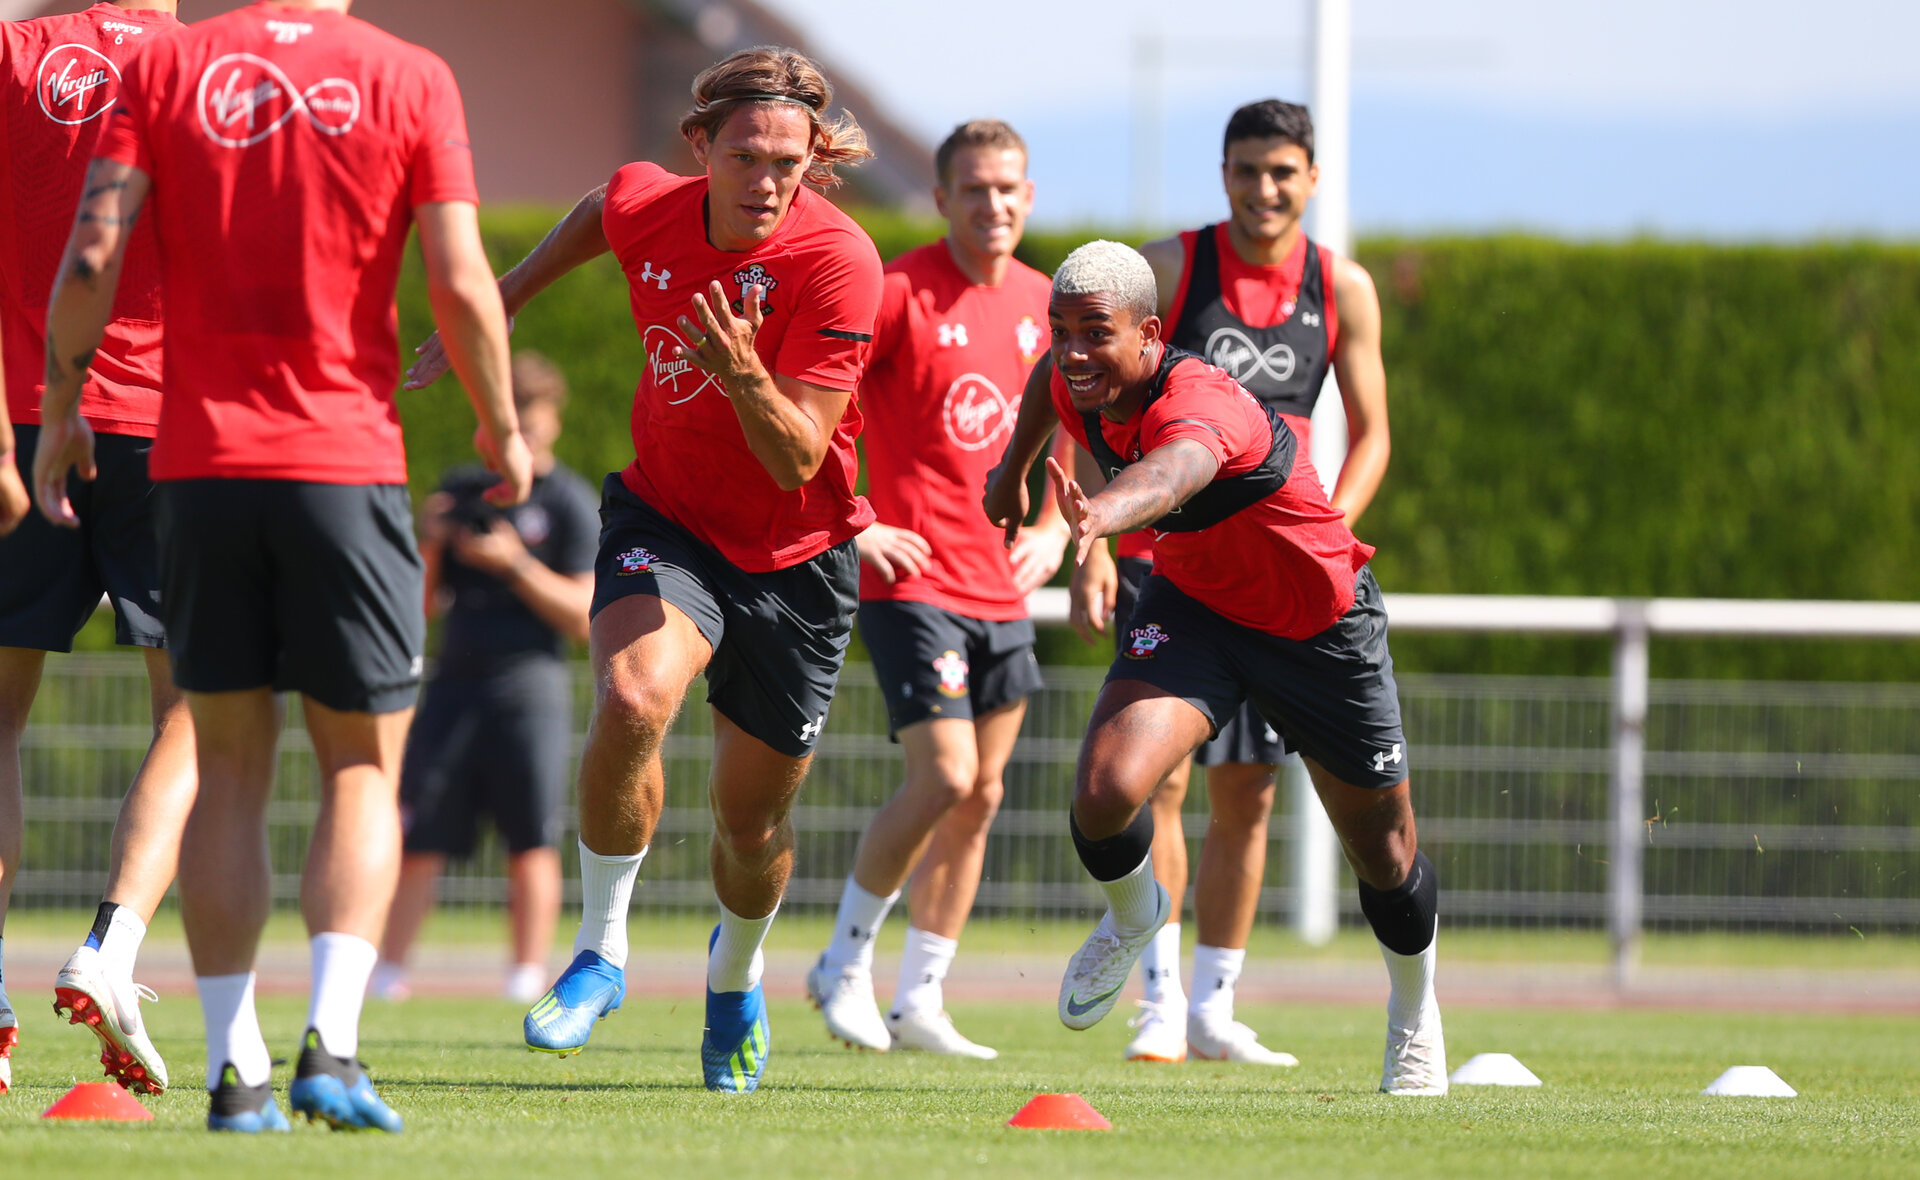 EVIAN-LES-BAINS, FRANCE - JULY 27: Jannik Vestergaard(L) and Mario Lemina during Southampton FC's pre season training camp, on July 27, 2018 in Evian-les-Bains, France. (Photo by Matt Watson/Southampton FC via Getty Images)